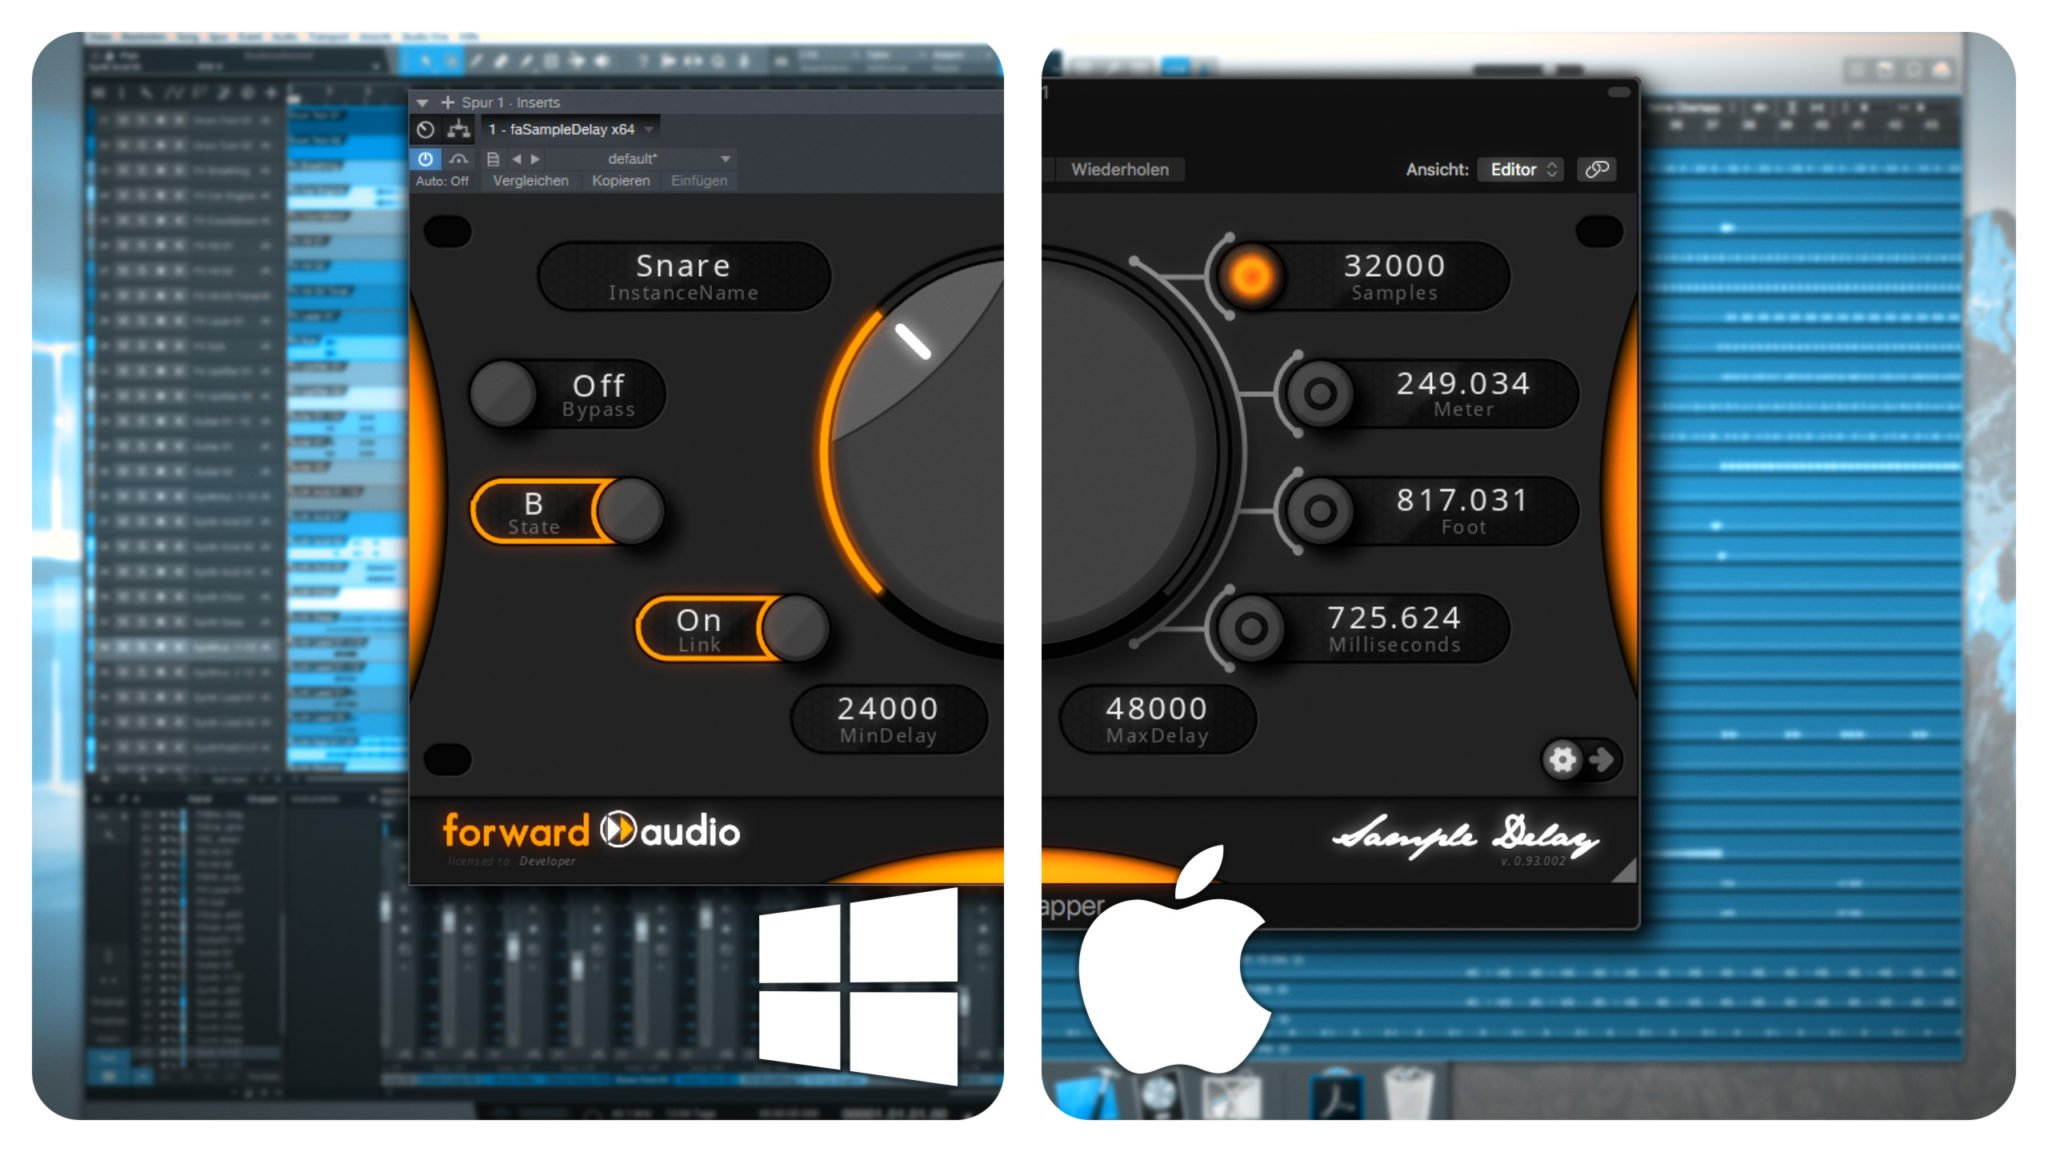 A split screen between a Mac and a Windows PC running the VST/AU Plugin faSampleDelay